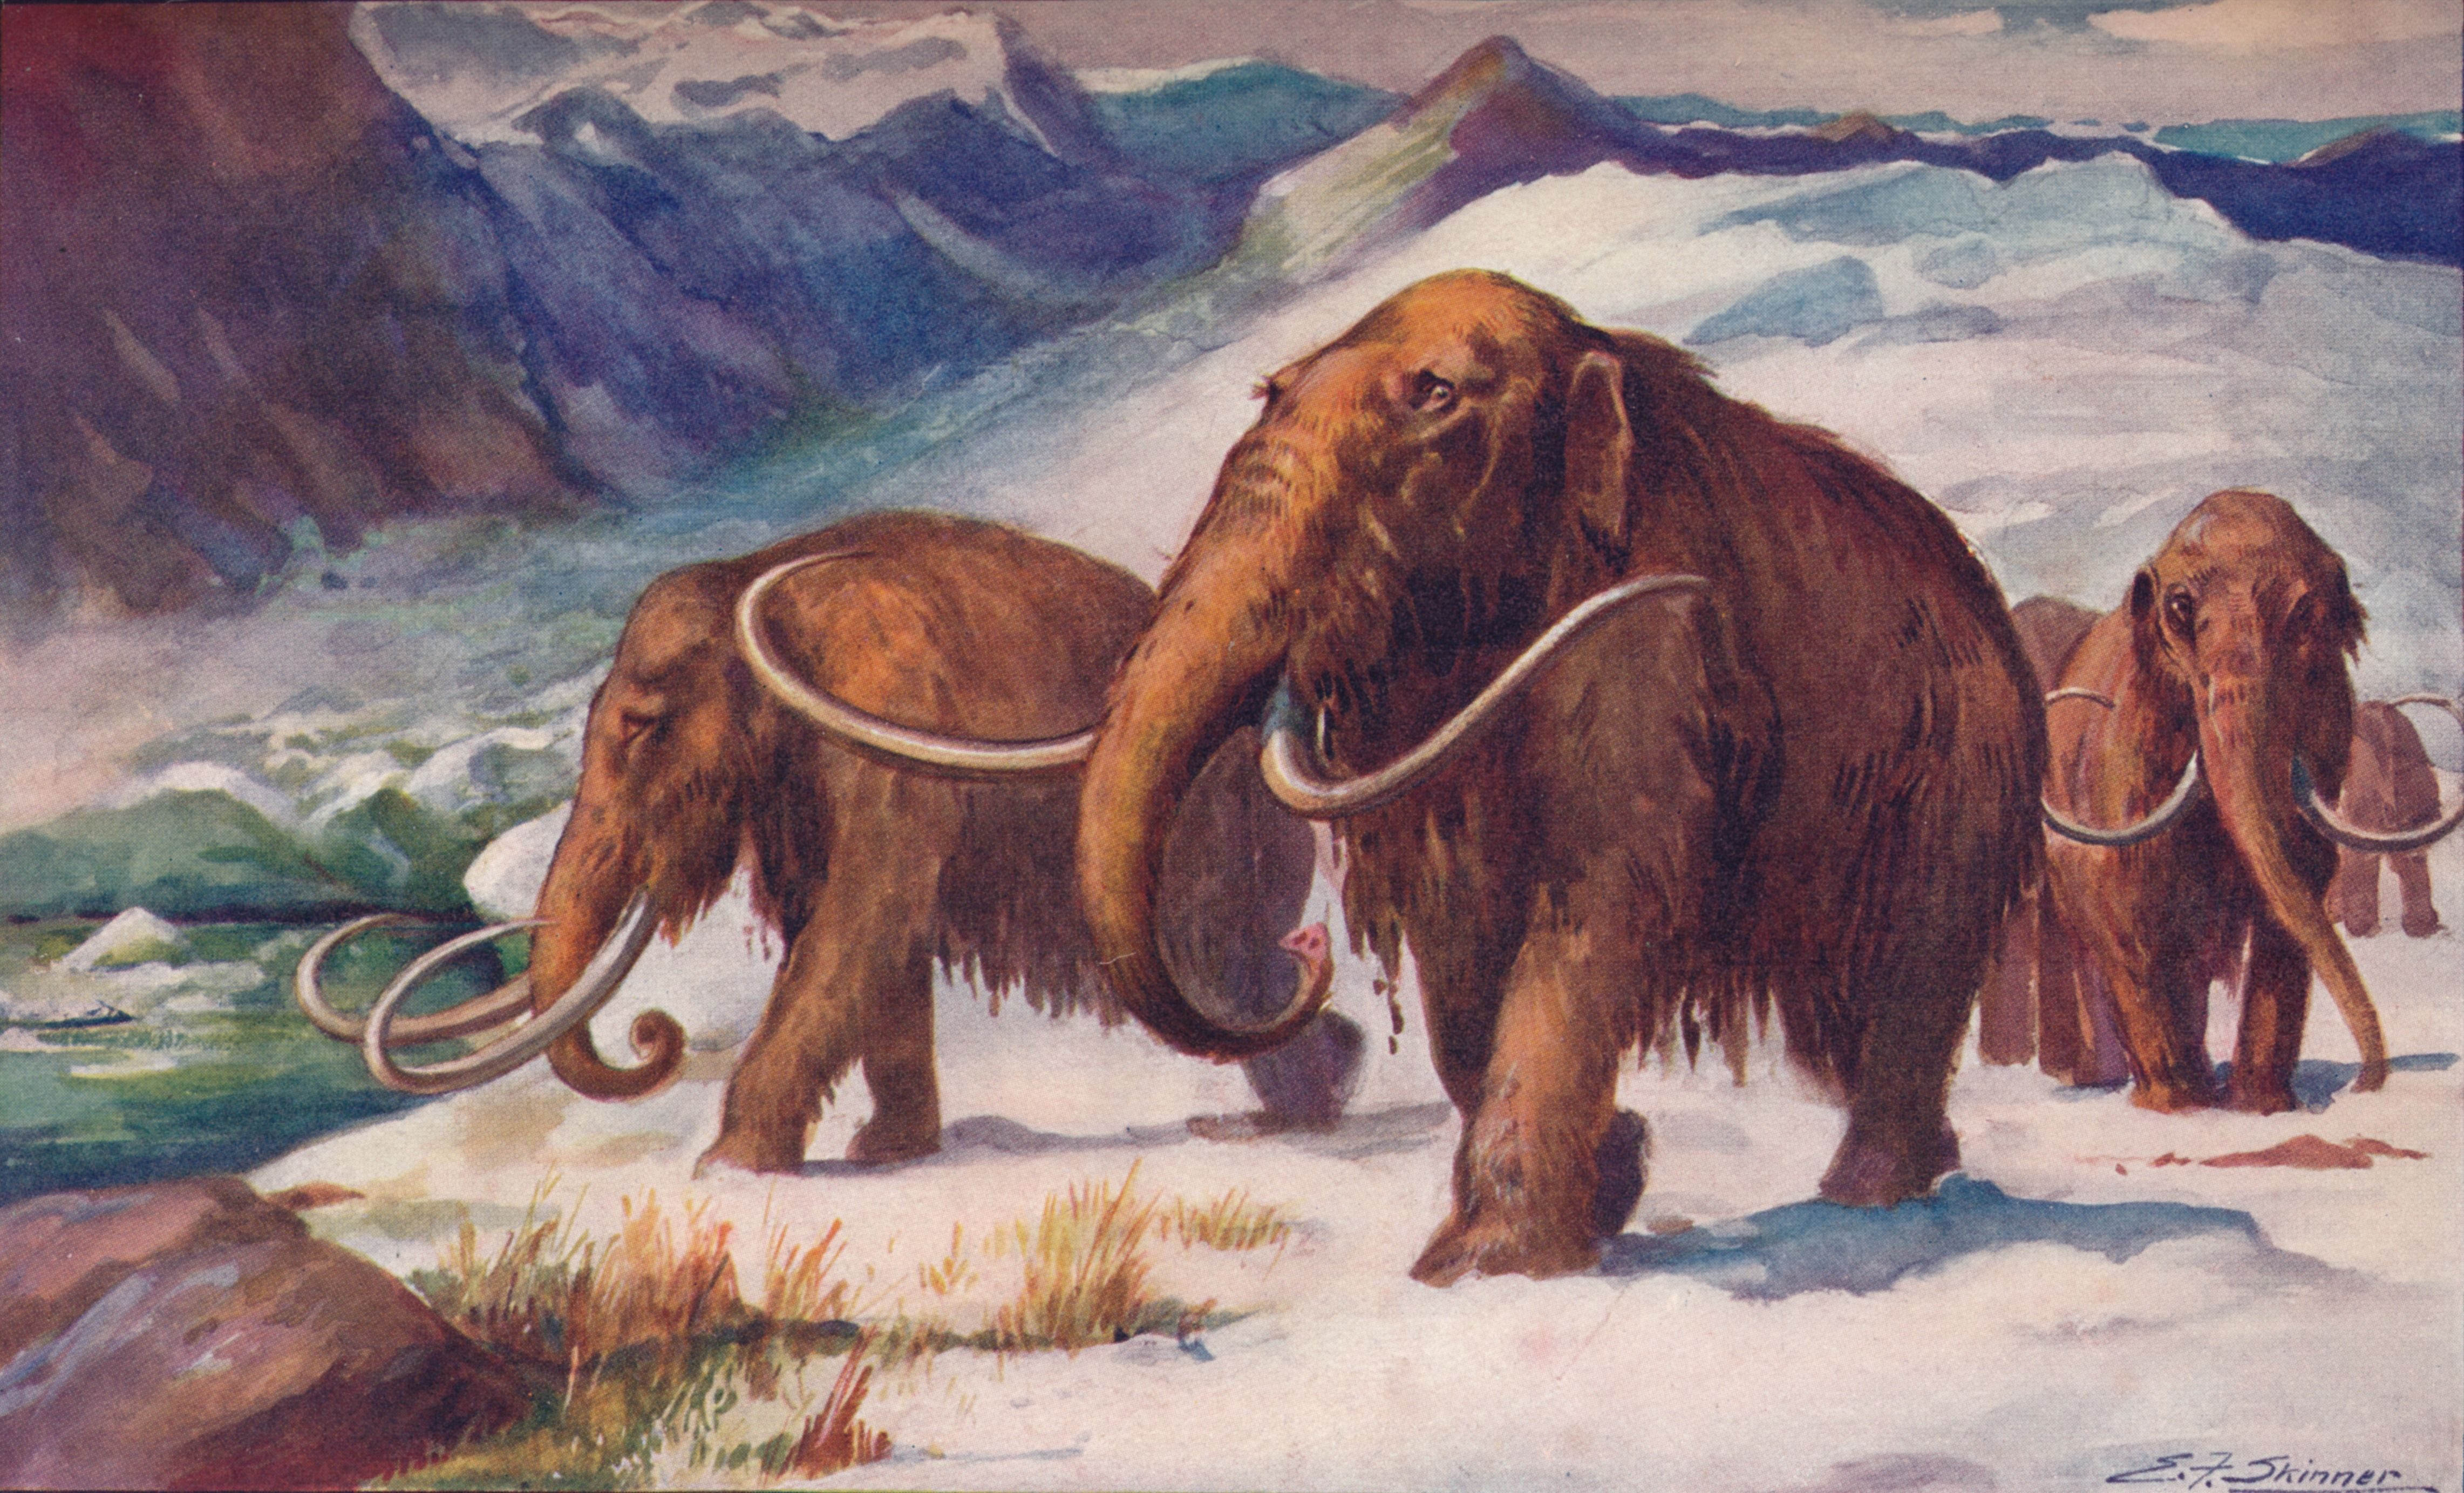 Neanderthals and Woolly Mammoths Shared Genetic Traits